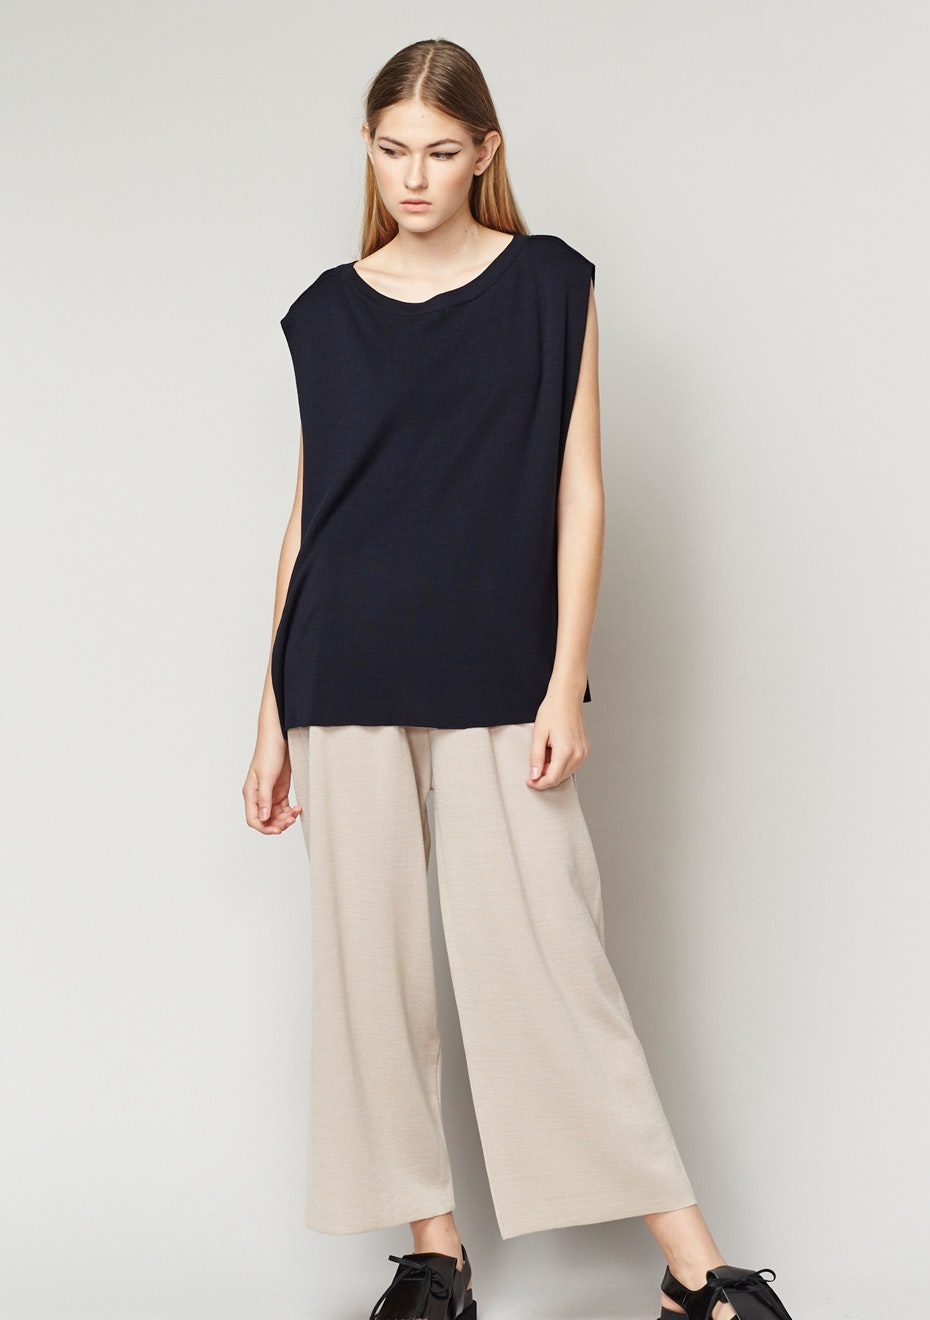 Achro - Linen Mixed Knit Top With Folded Sides - Navy